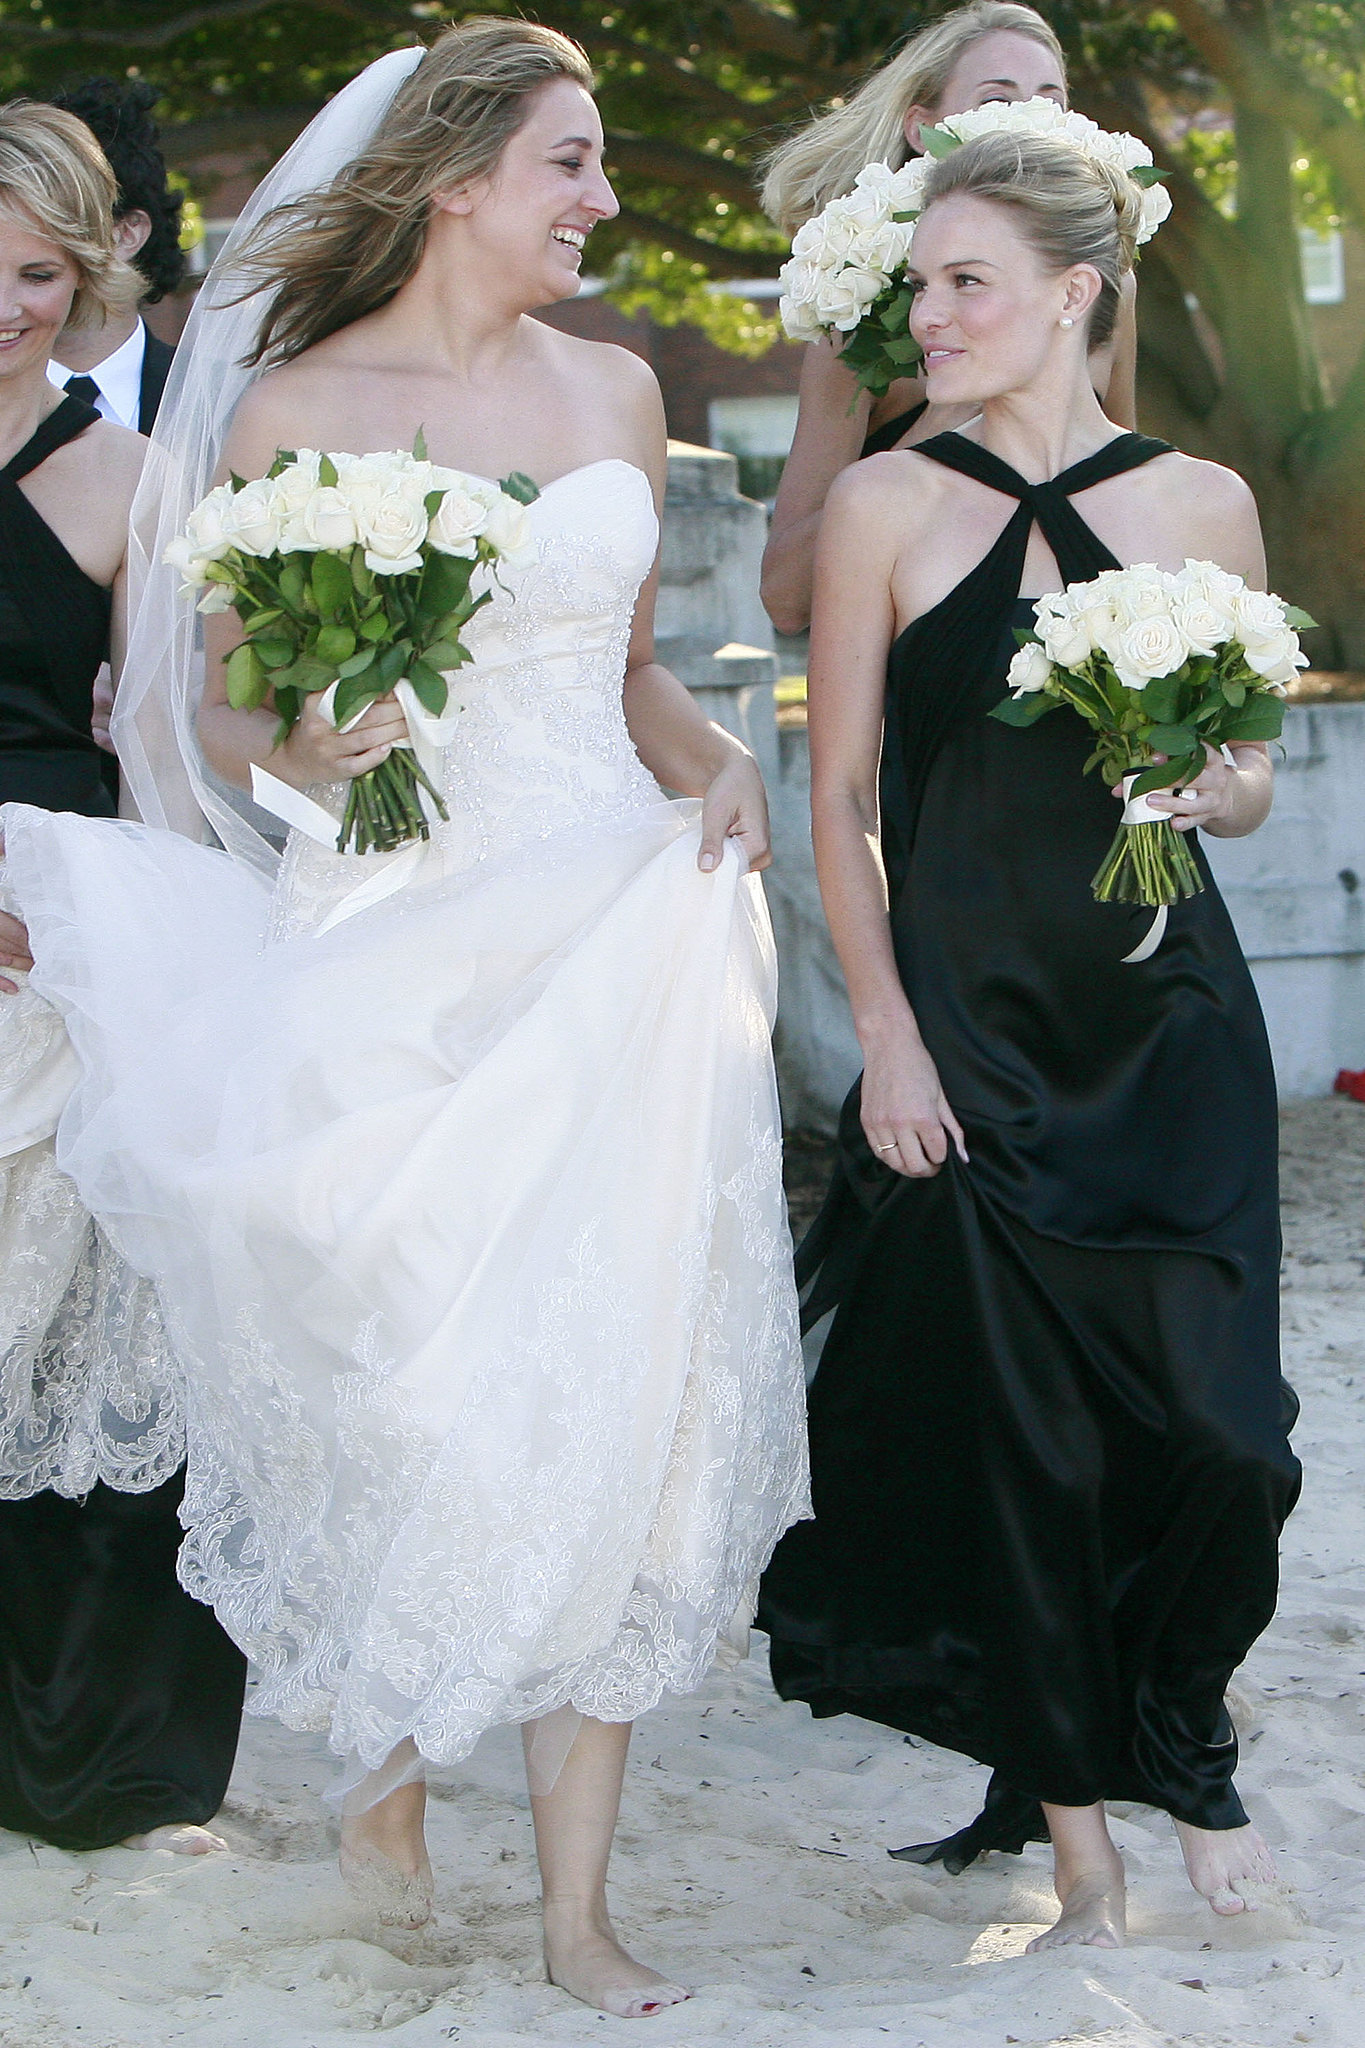 Kate Bosworth shared a moment with the bride at a March 2008 wedding in Sydney.